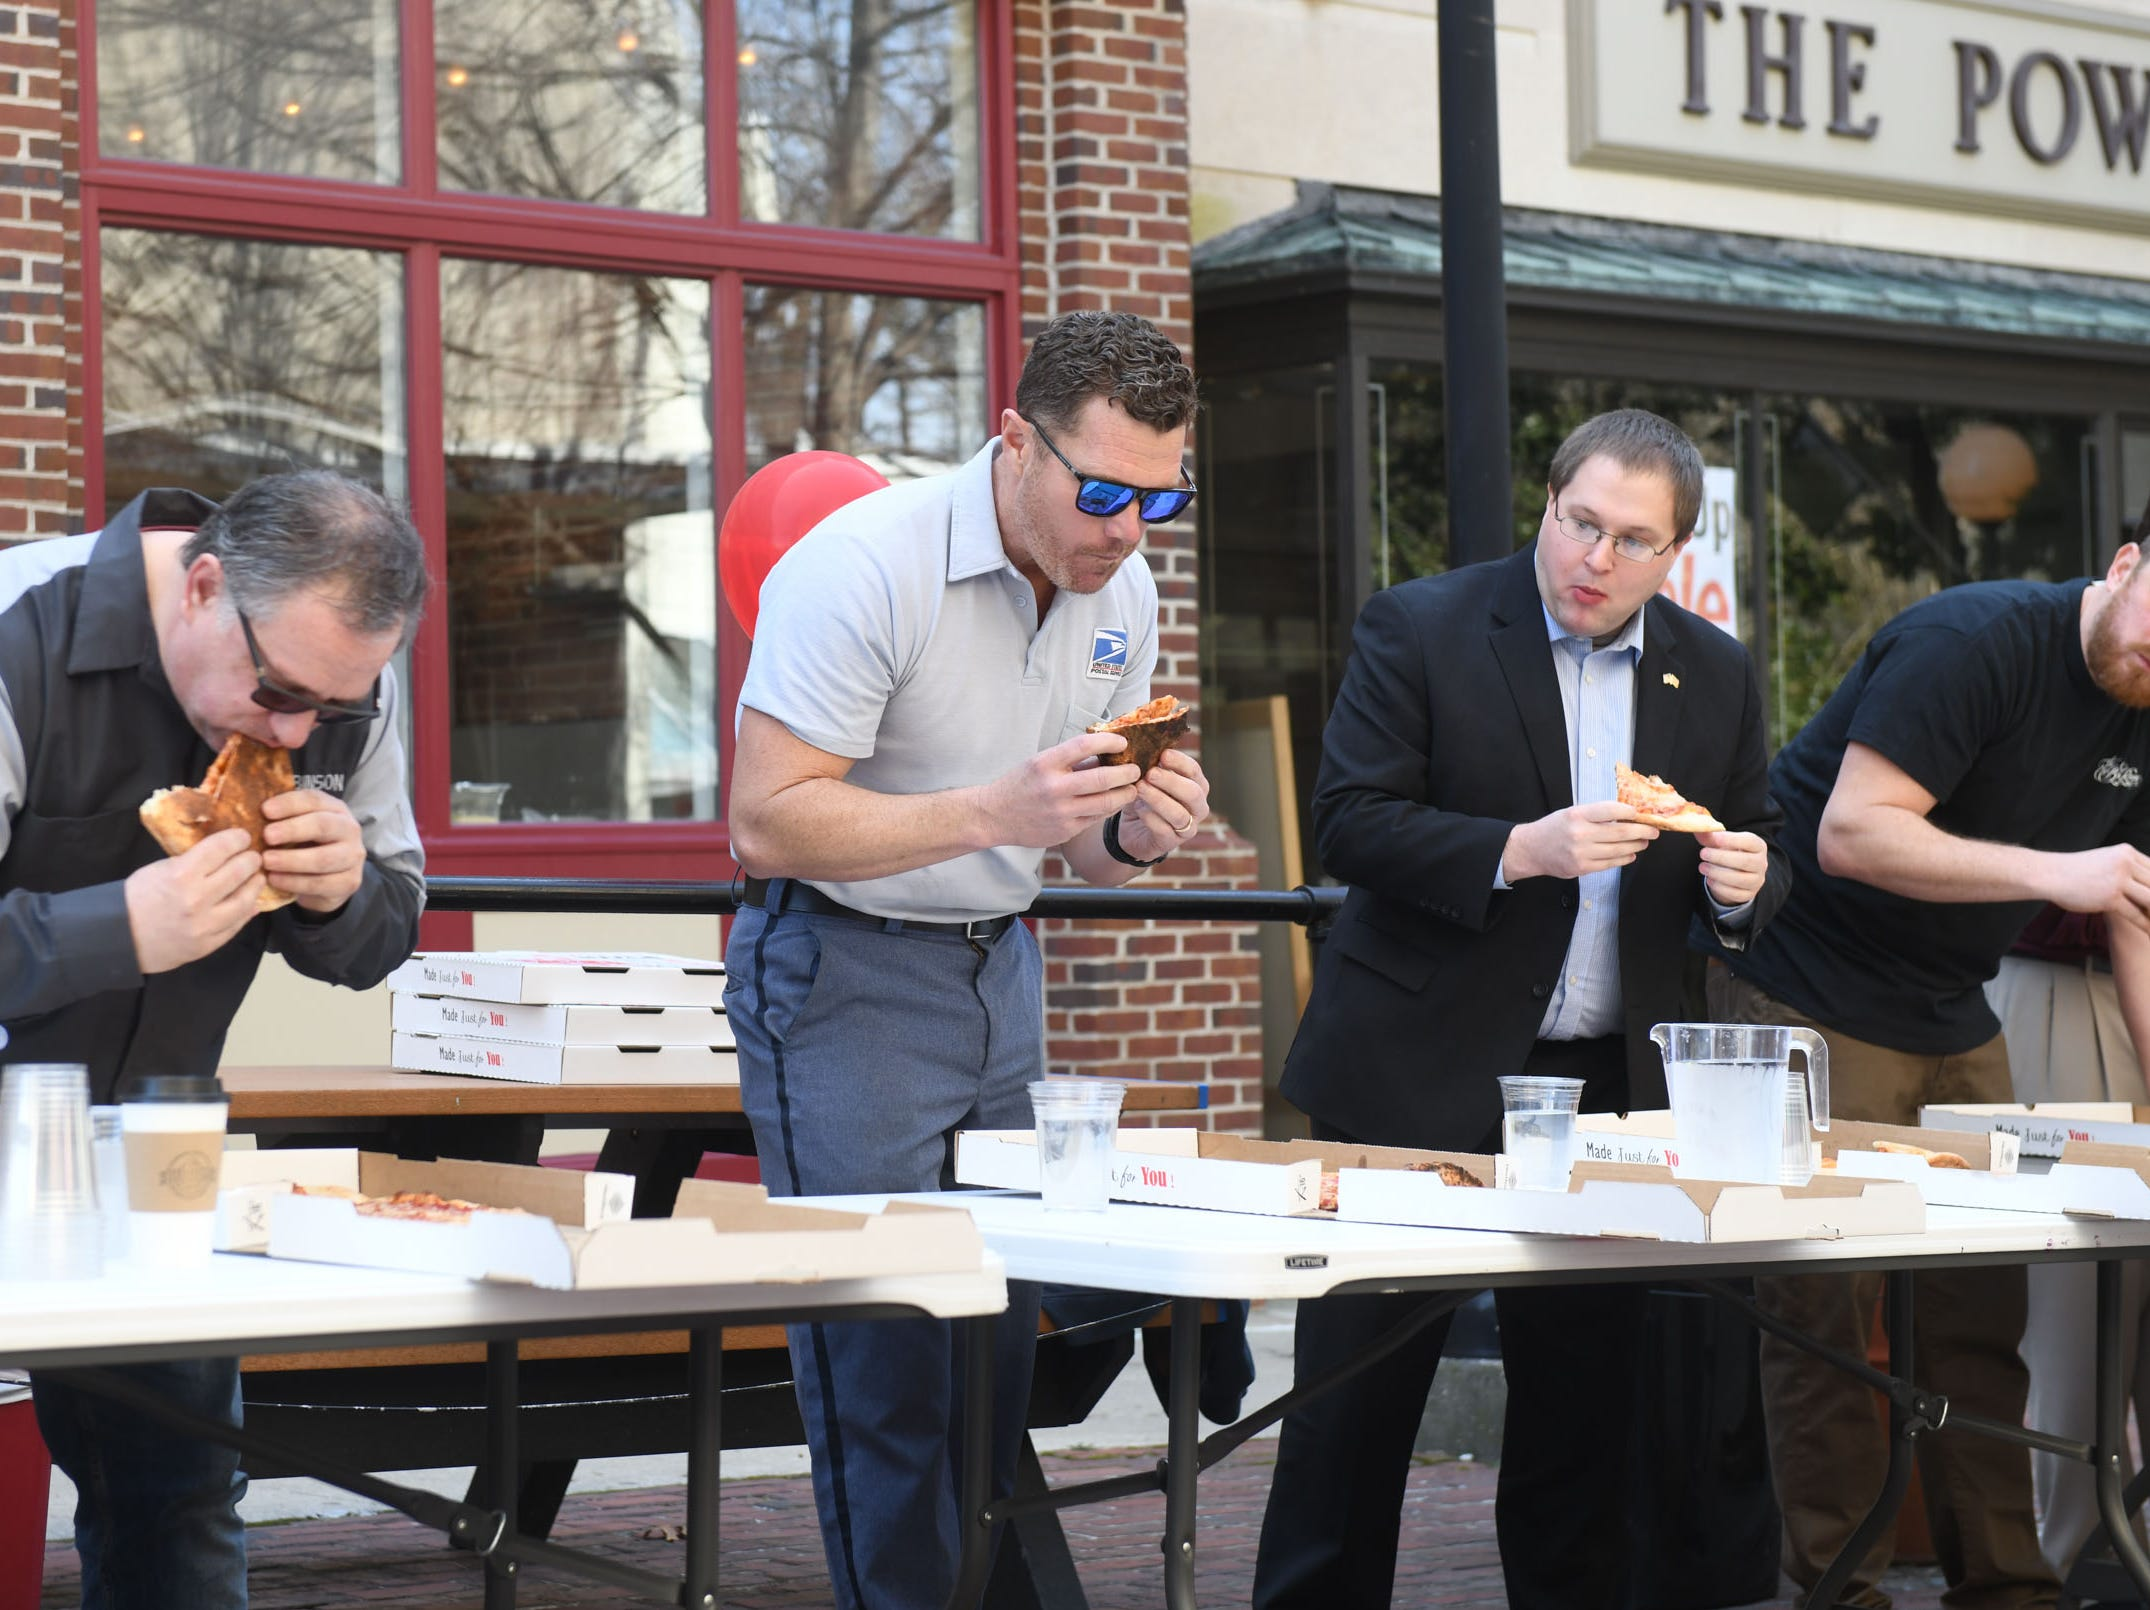 Contestants see who can eat a 16-inch pie during Maya Bella's Pizzeria pizza-pie eating contest during PI(e) Day in Downtown Salisbury on Thursday, March 14, 2019.